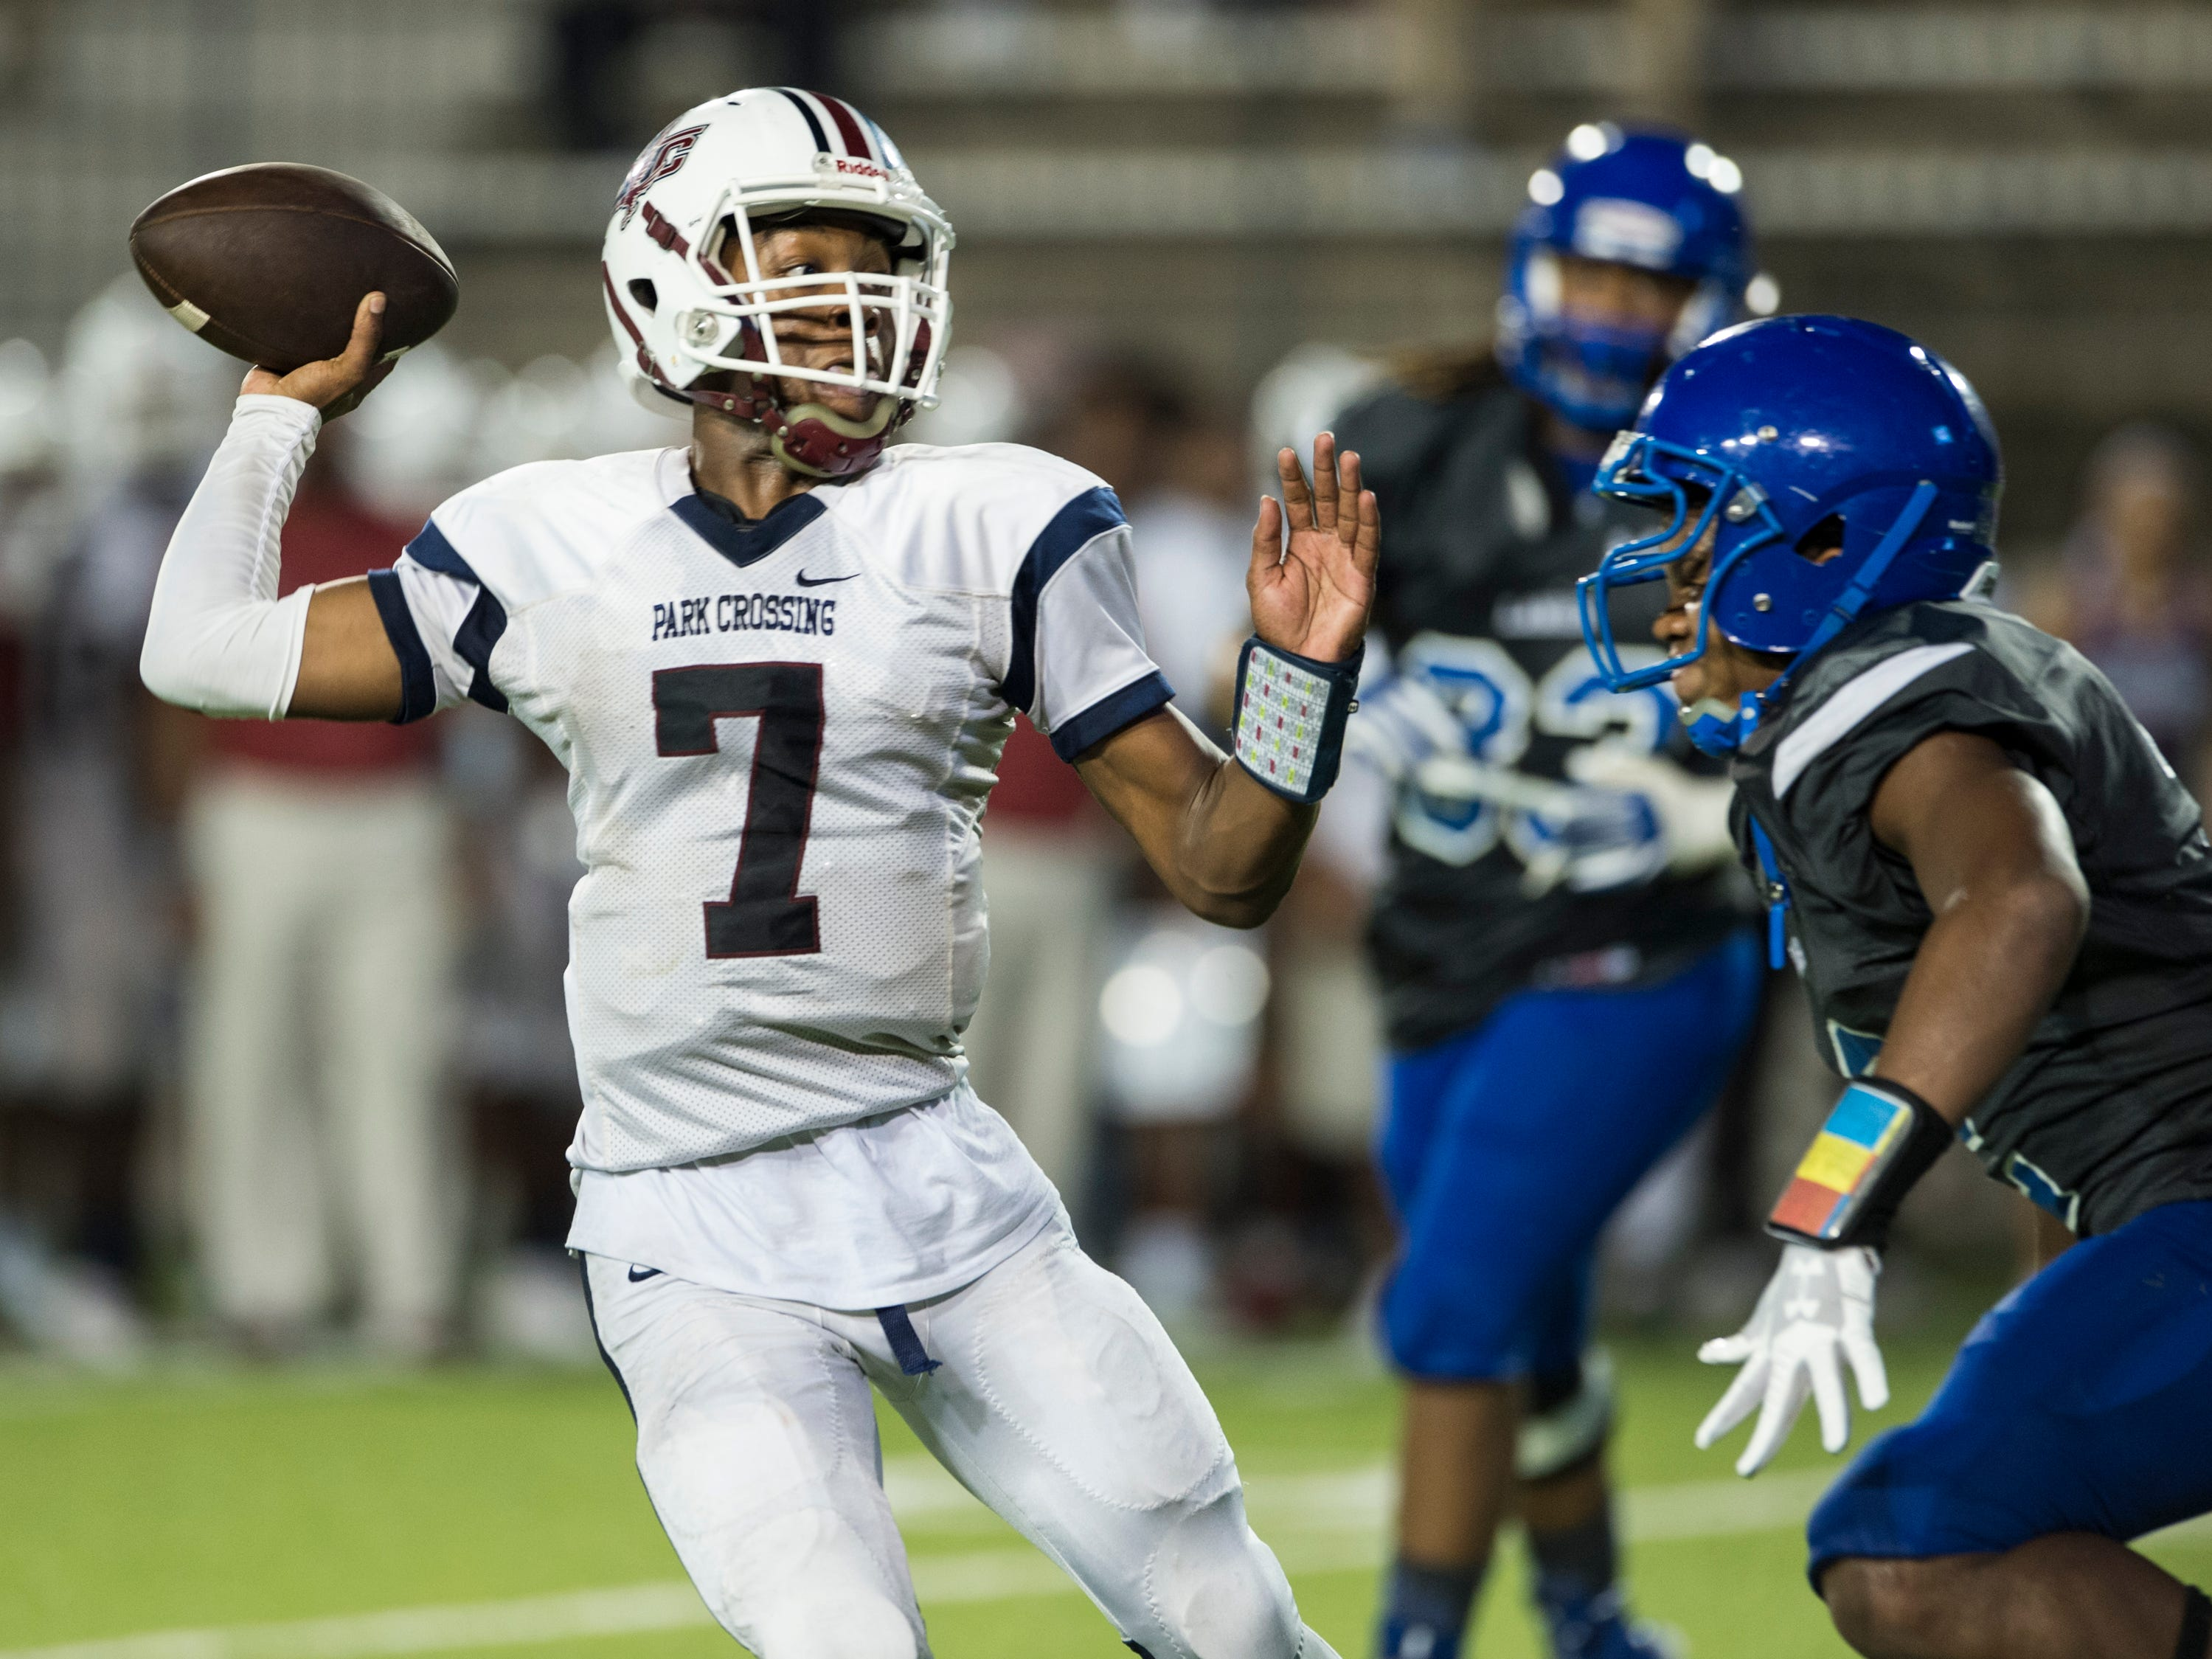 Park Crossing's Trevor Robinson (7) throws the ball down the field at Cramton Bowl in Montgomery, Ala., on Friday, Sept. 21, 2018. Lanier defeated Park Crossing 35-28.